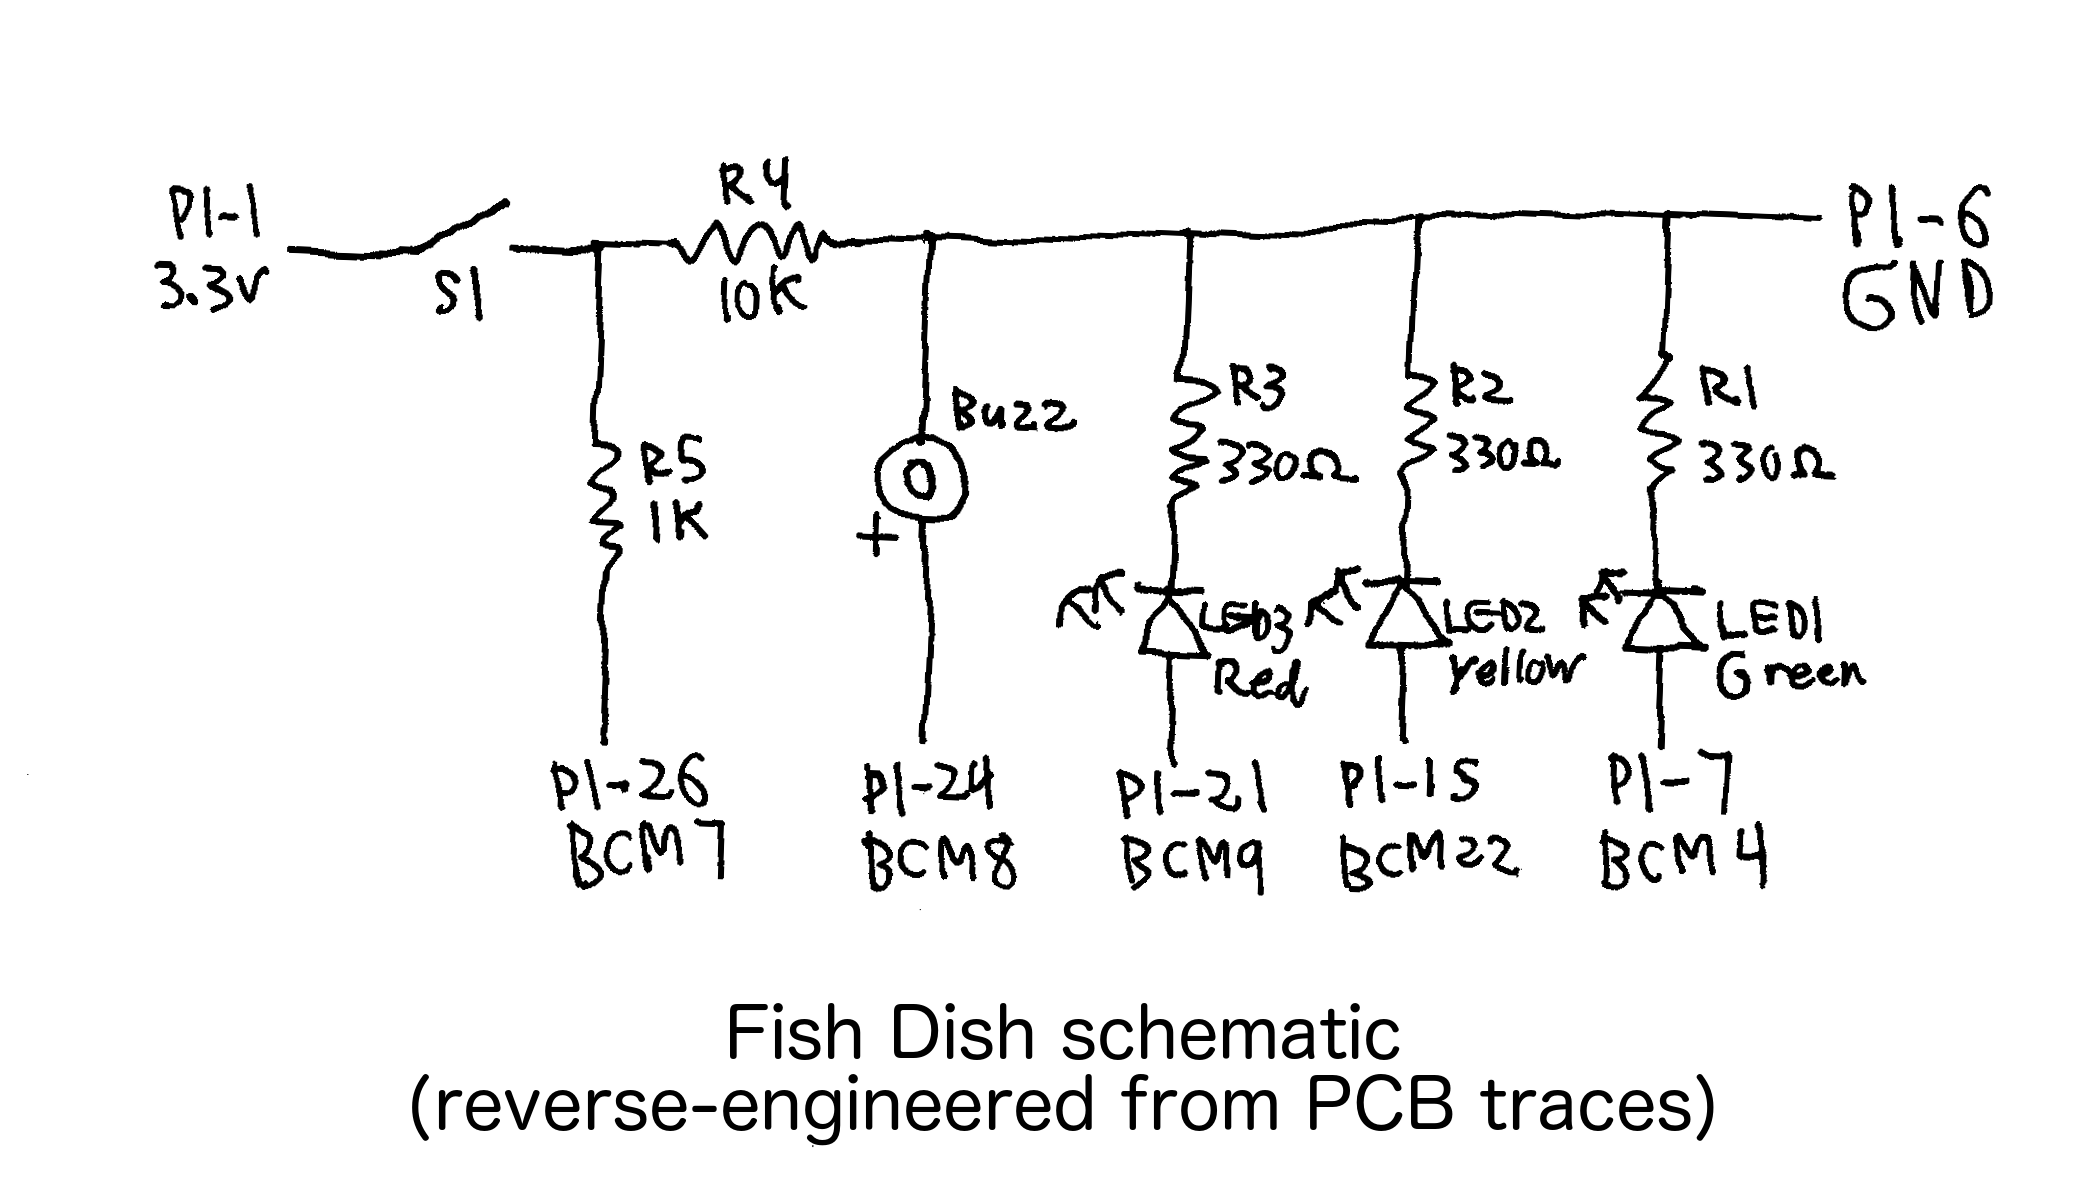 Fish Dish schematic